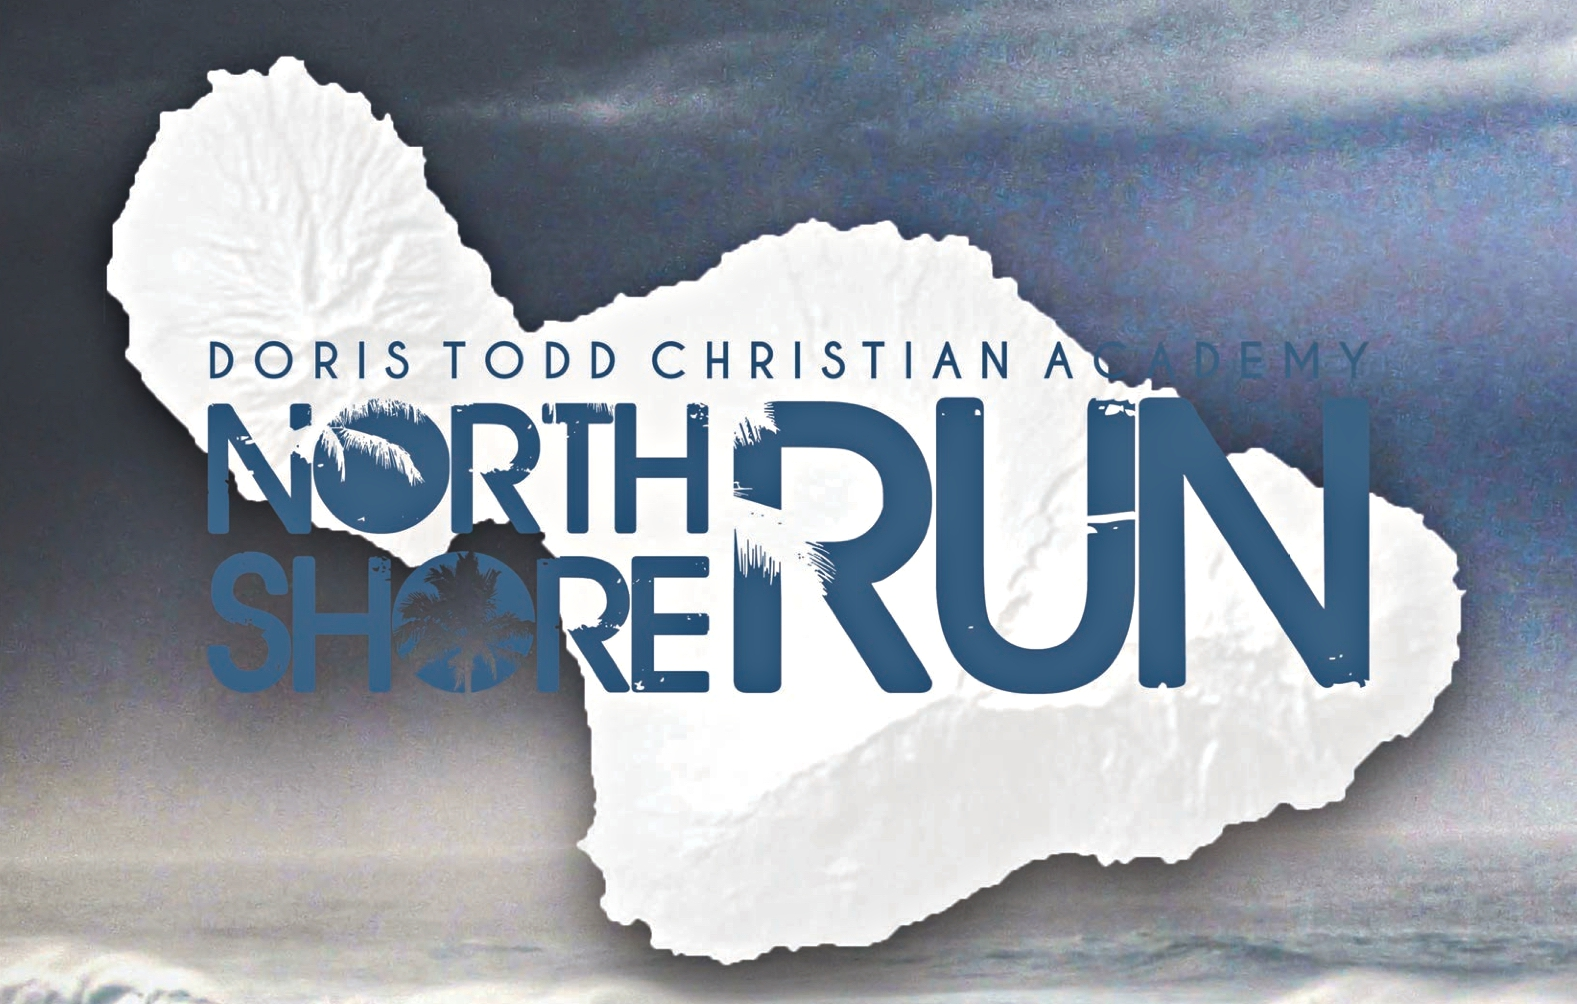 Doris Todd Christian Academy North Shore Run